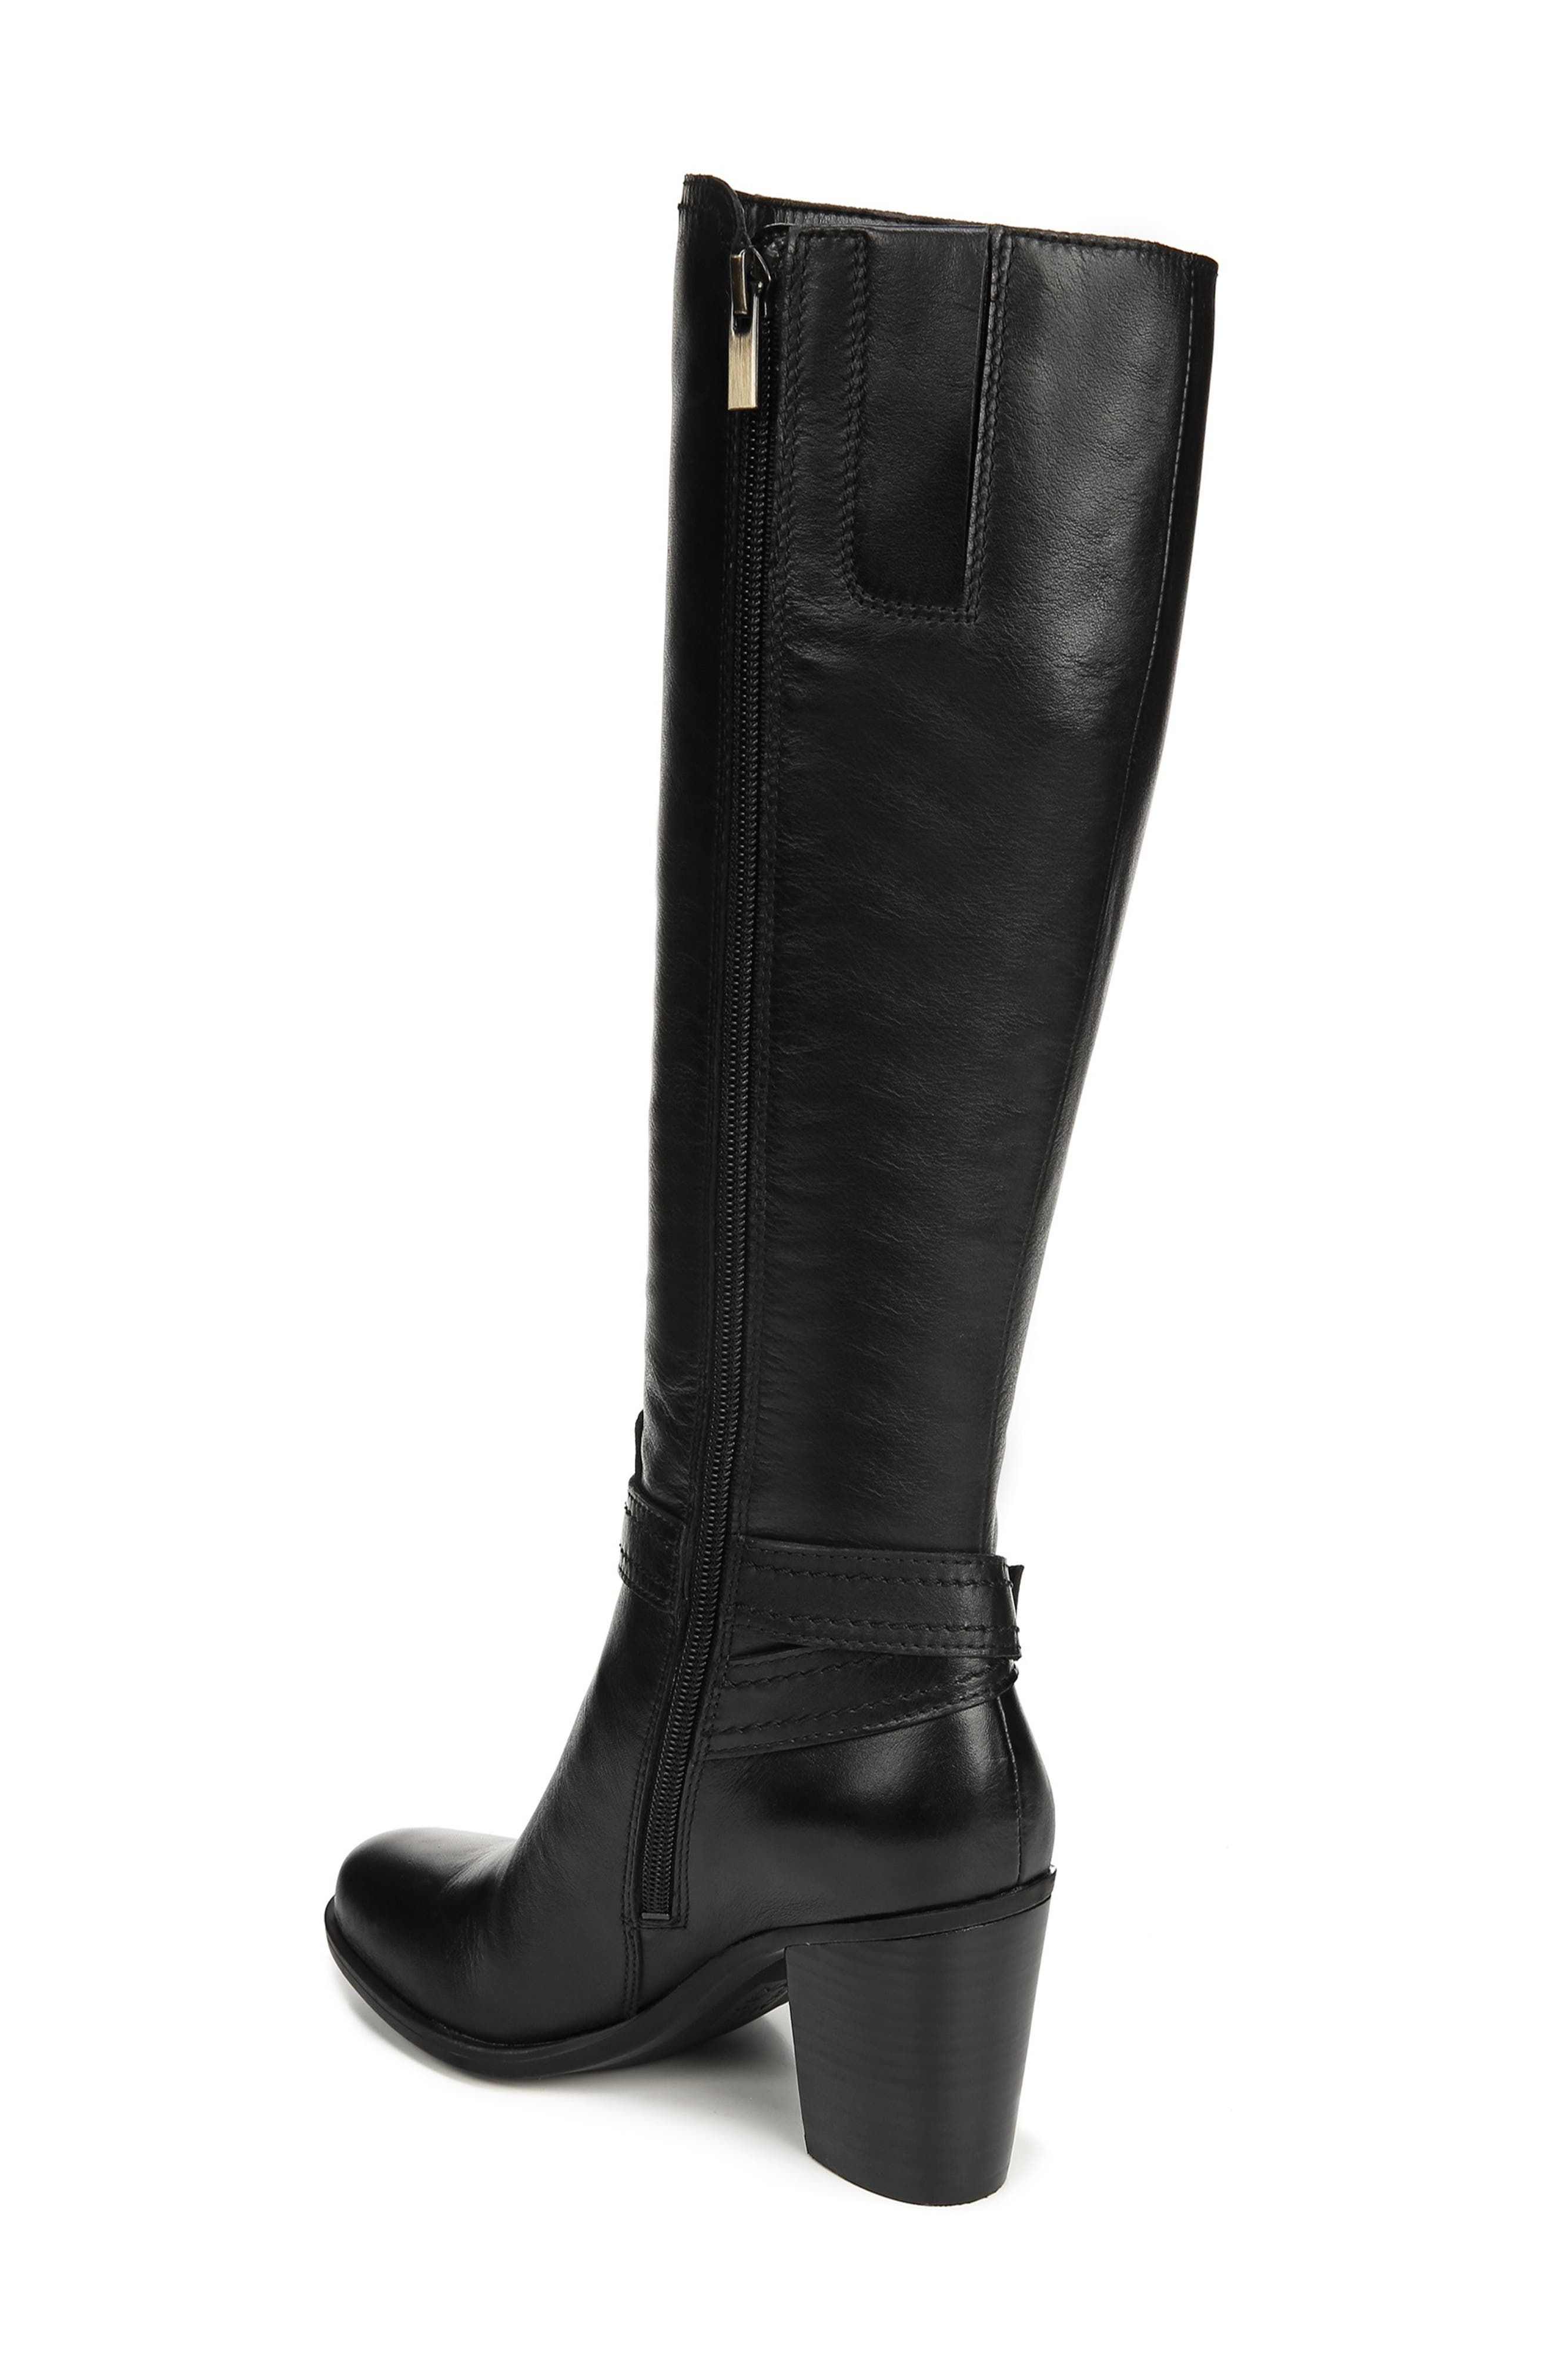 NATURALIZER, Kelsey Knee High Boot, Alternate thumbnail 2, color, BLACK LEATHER